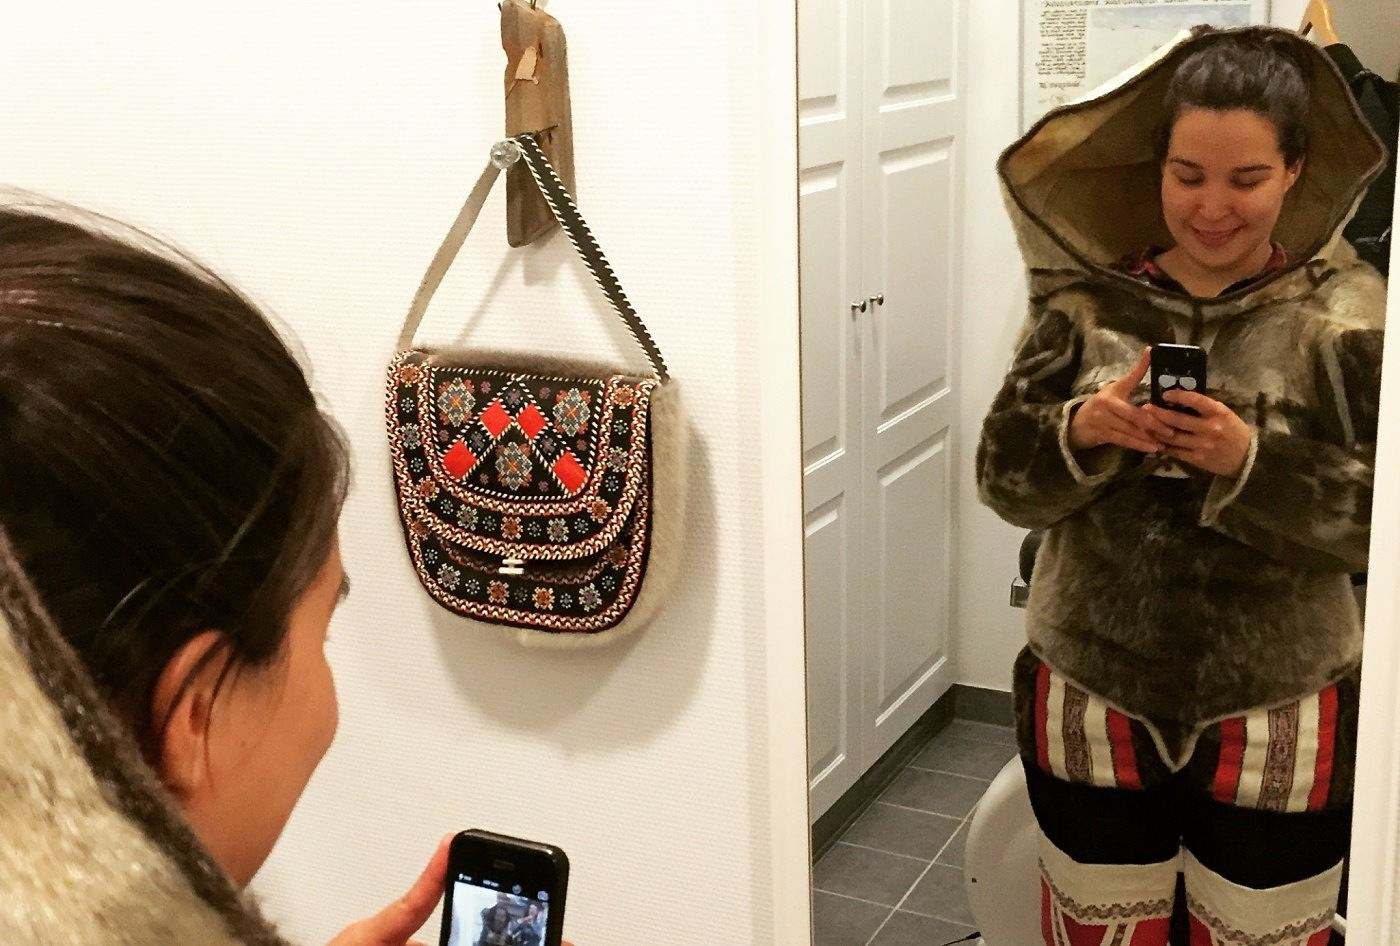 Tukumminnguaq Olsen prepares to share her reflection with the world via Instagram.